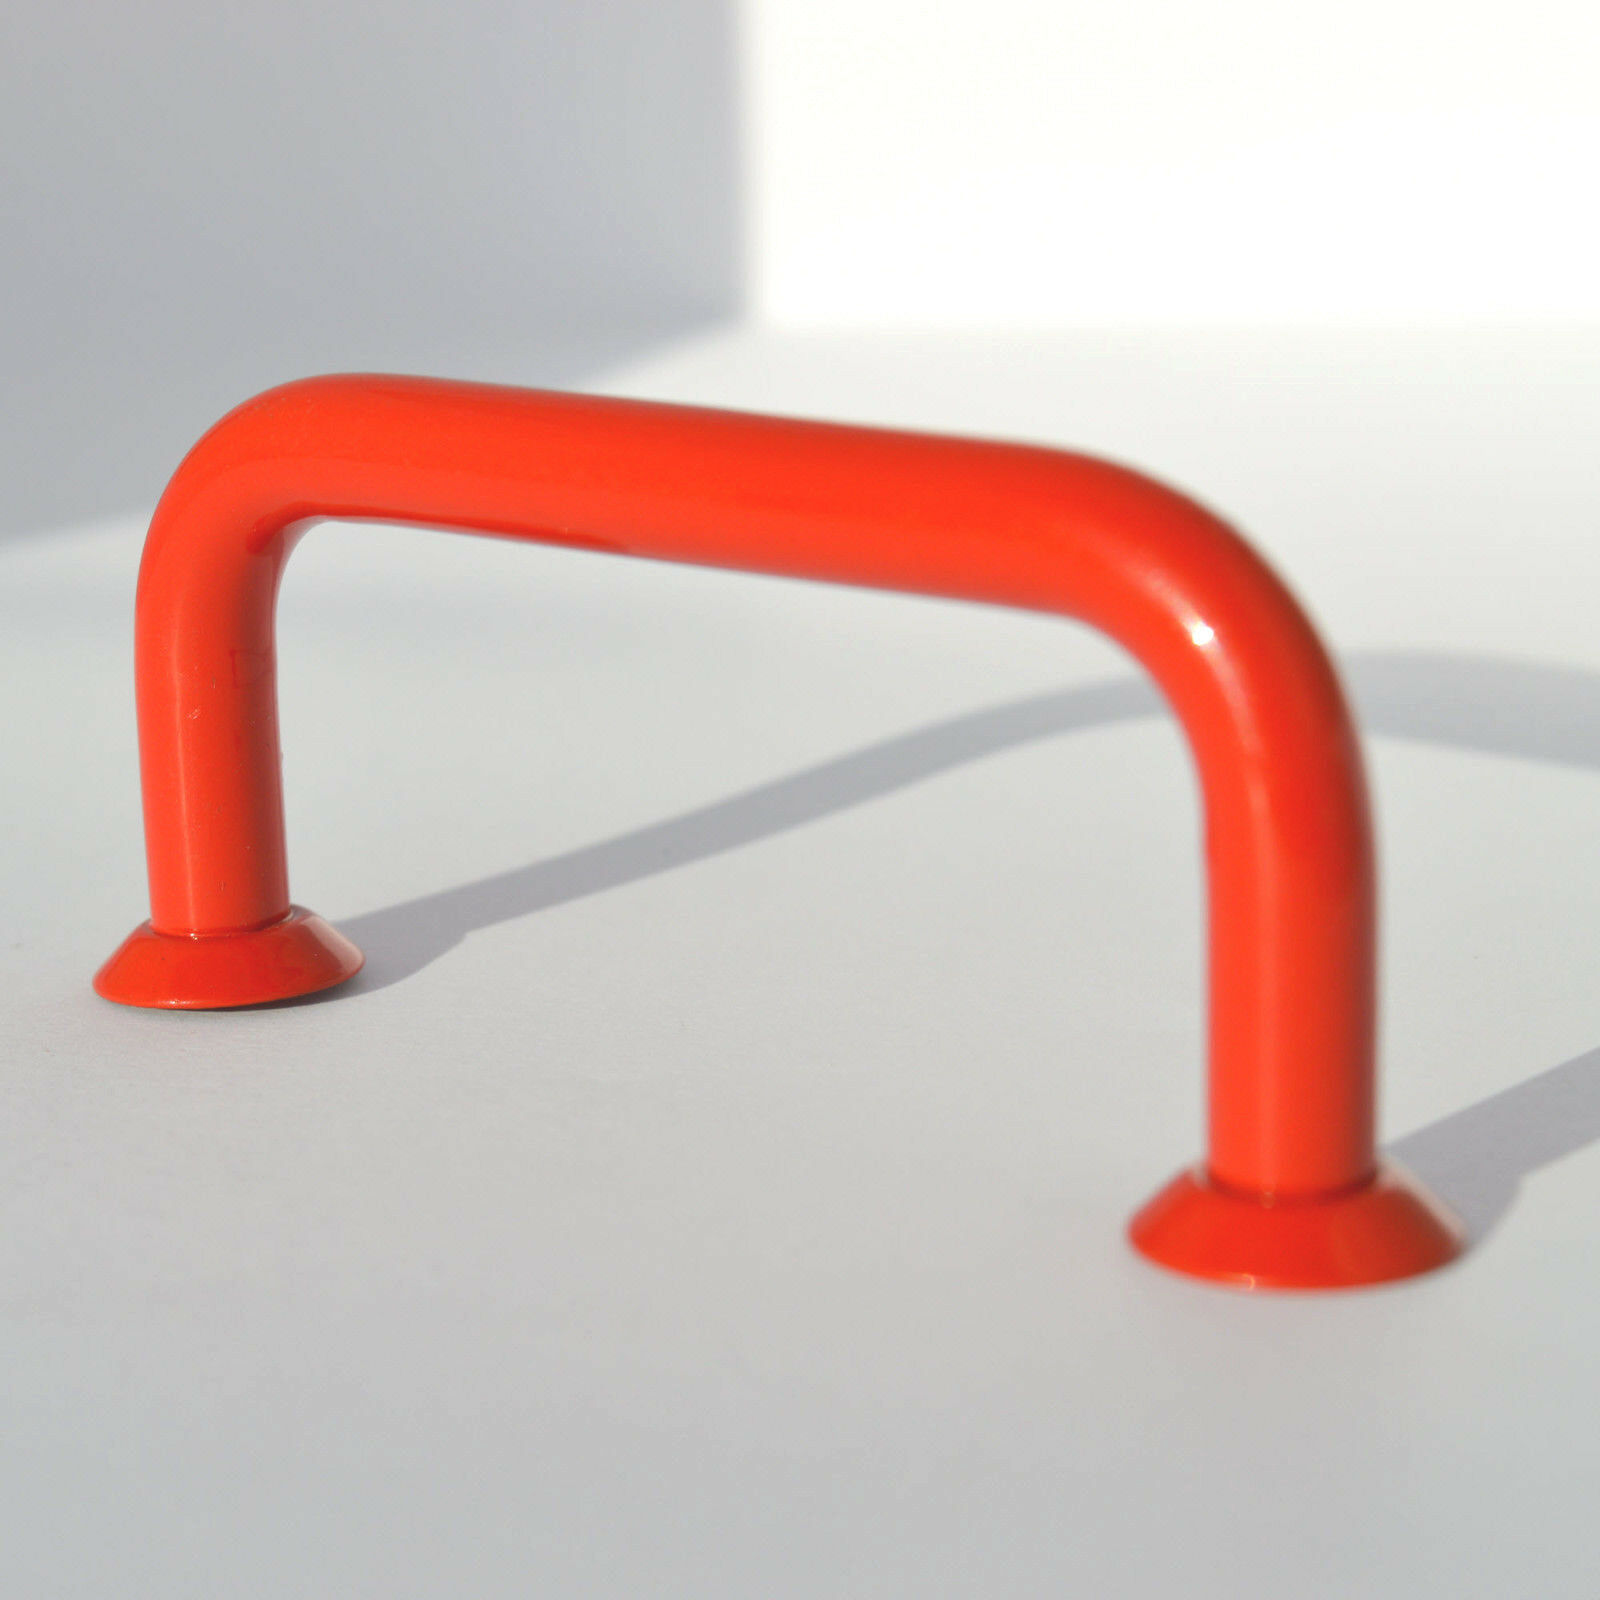 Image of: Red Retro Furniture Handles Kitchen Handles Furniture Handle Drawer Handles Cabinet Handles For Sale Online